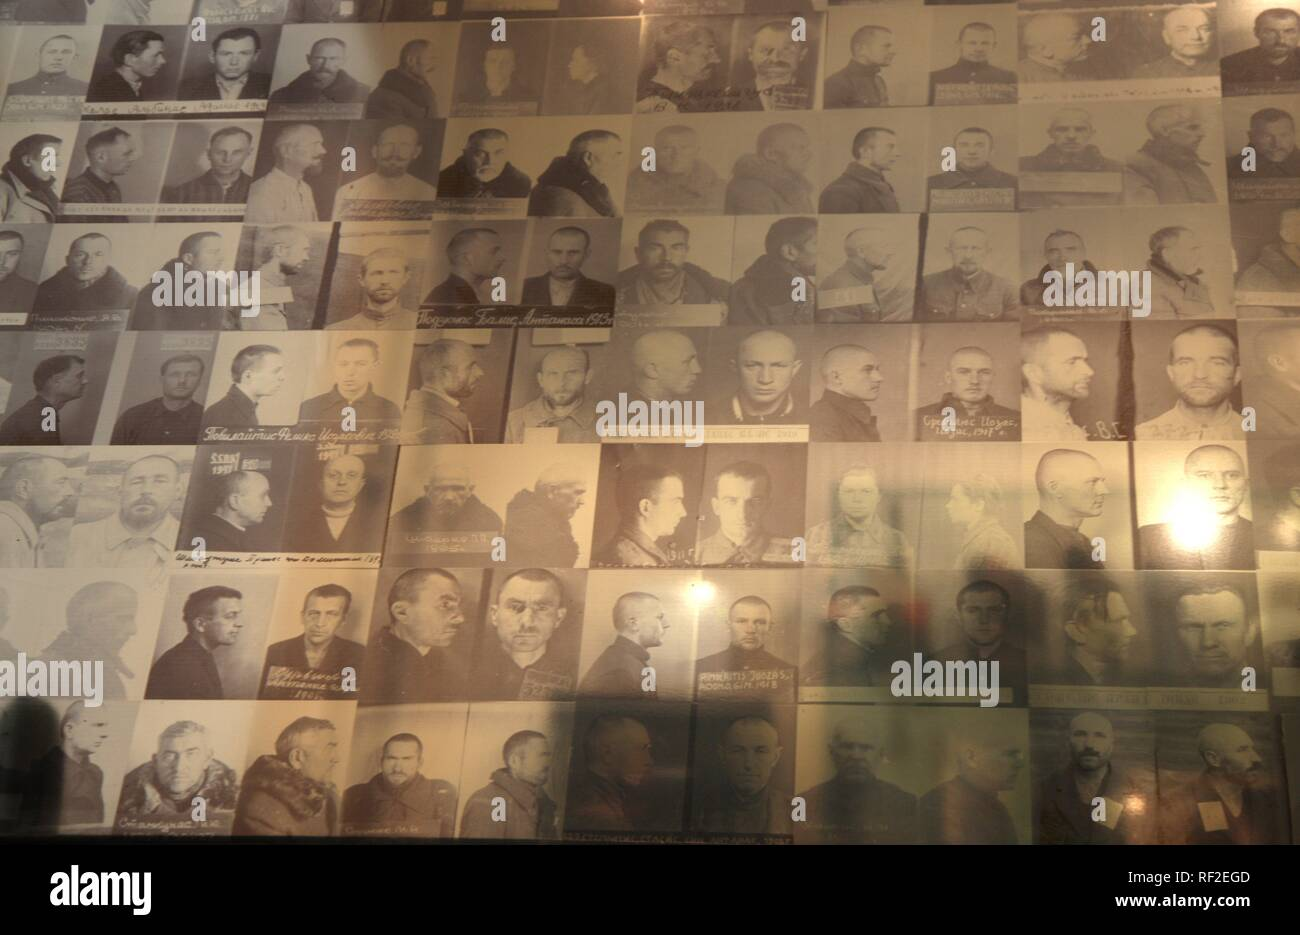 Photos in the KGB Museum, Genocide Museum, dealing with the periods of German and Soviet occupations and genocide, Vilnius - Stock Image